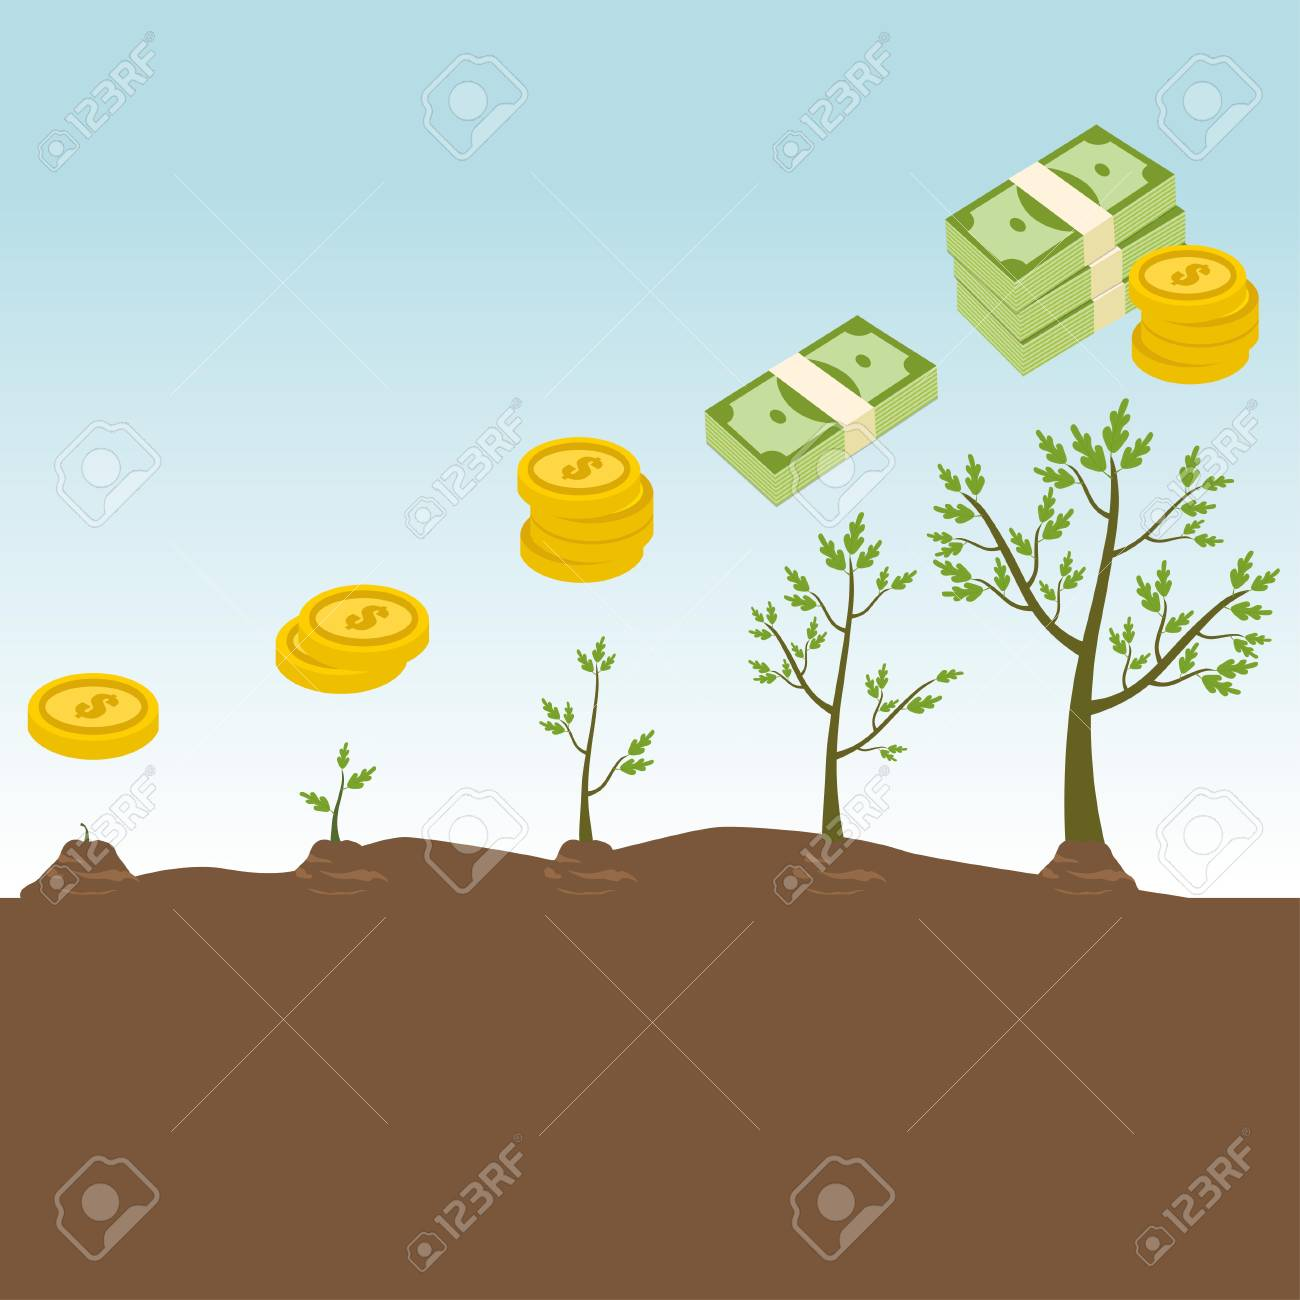 Tree growth concept with increasing money - 60719112